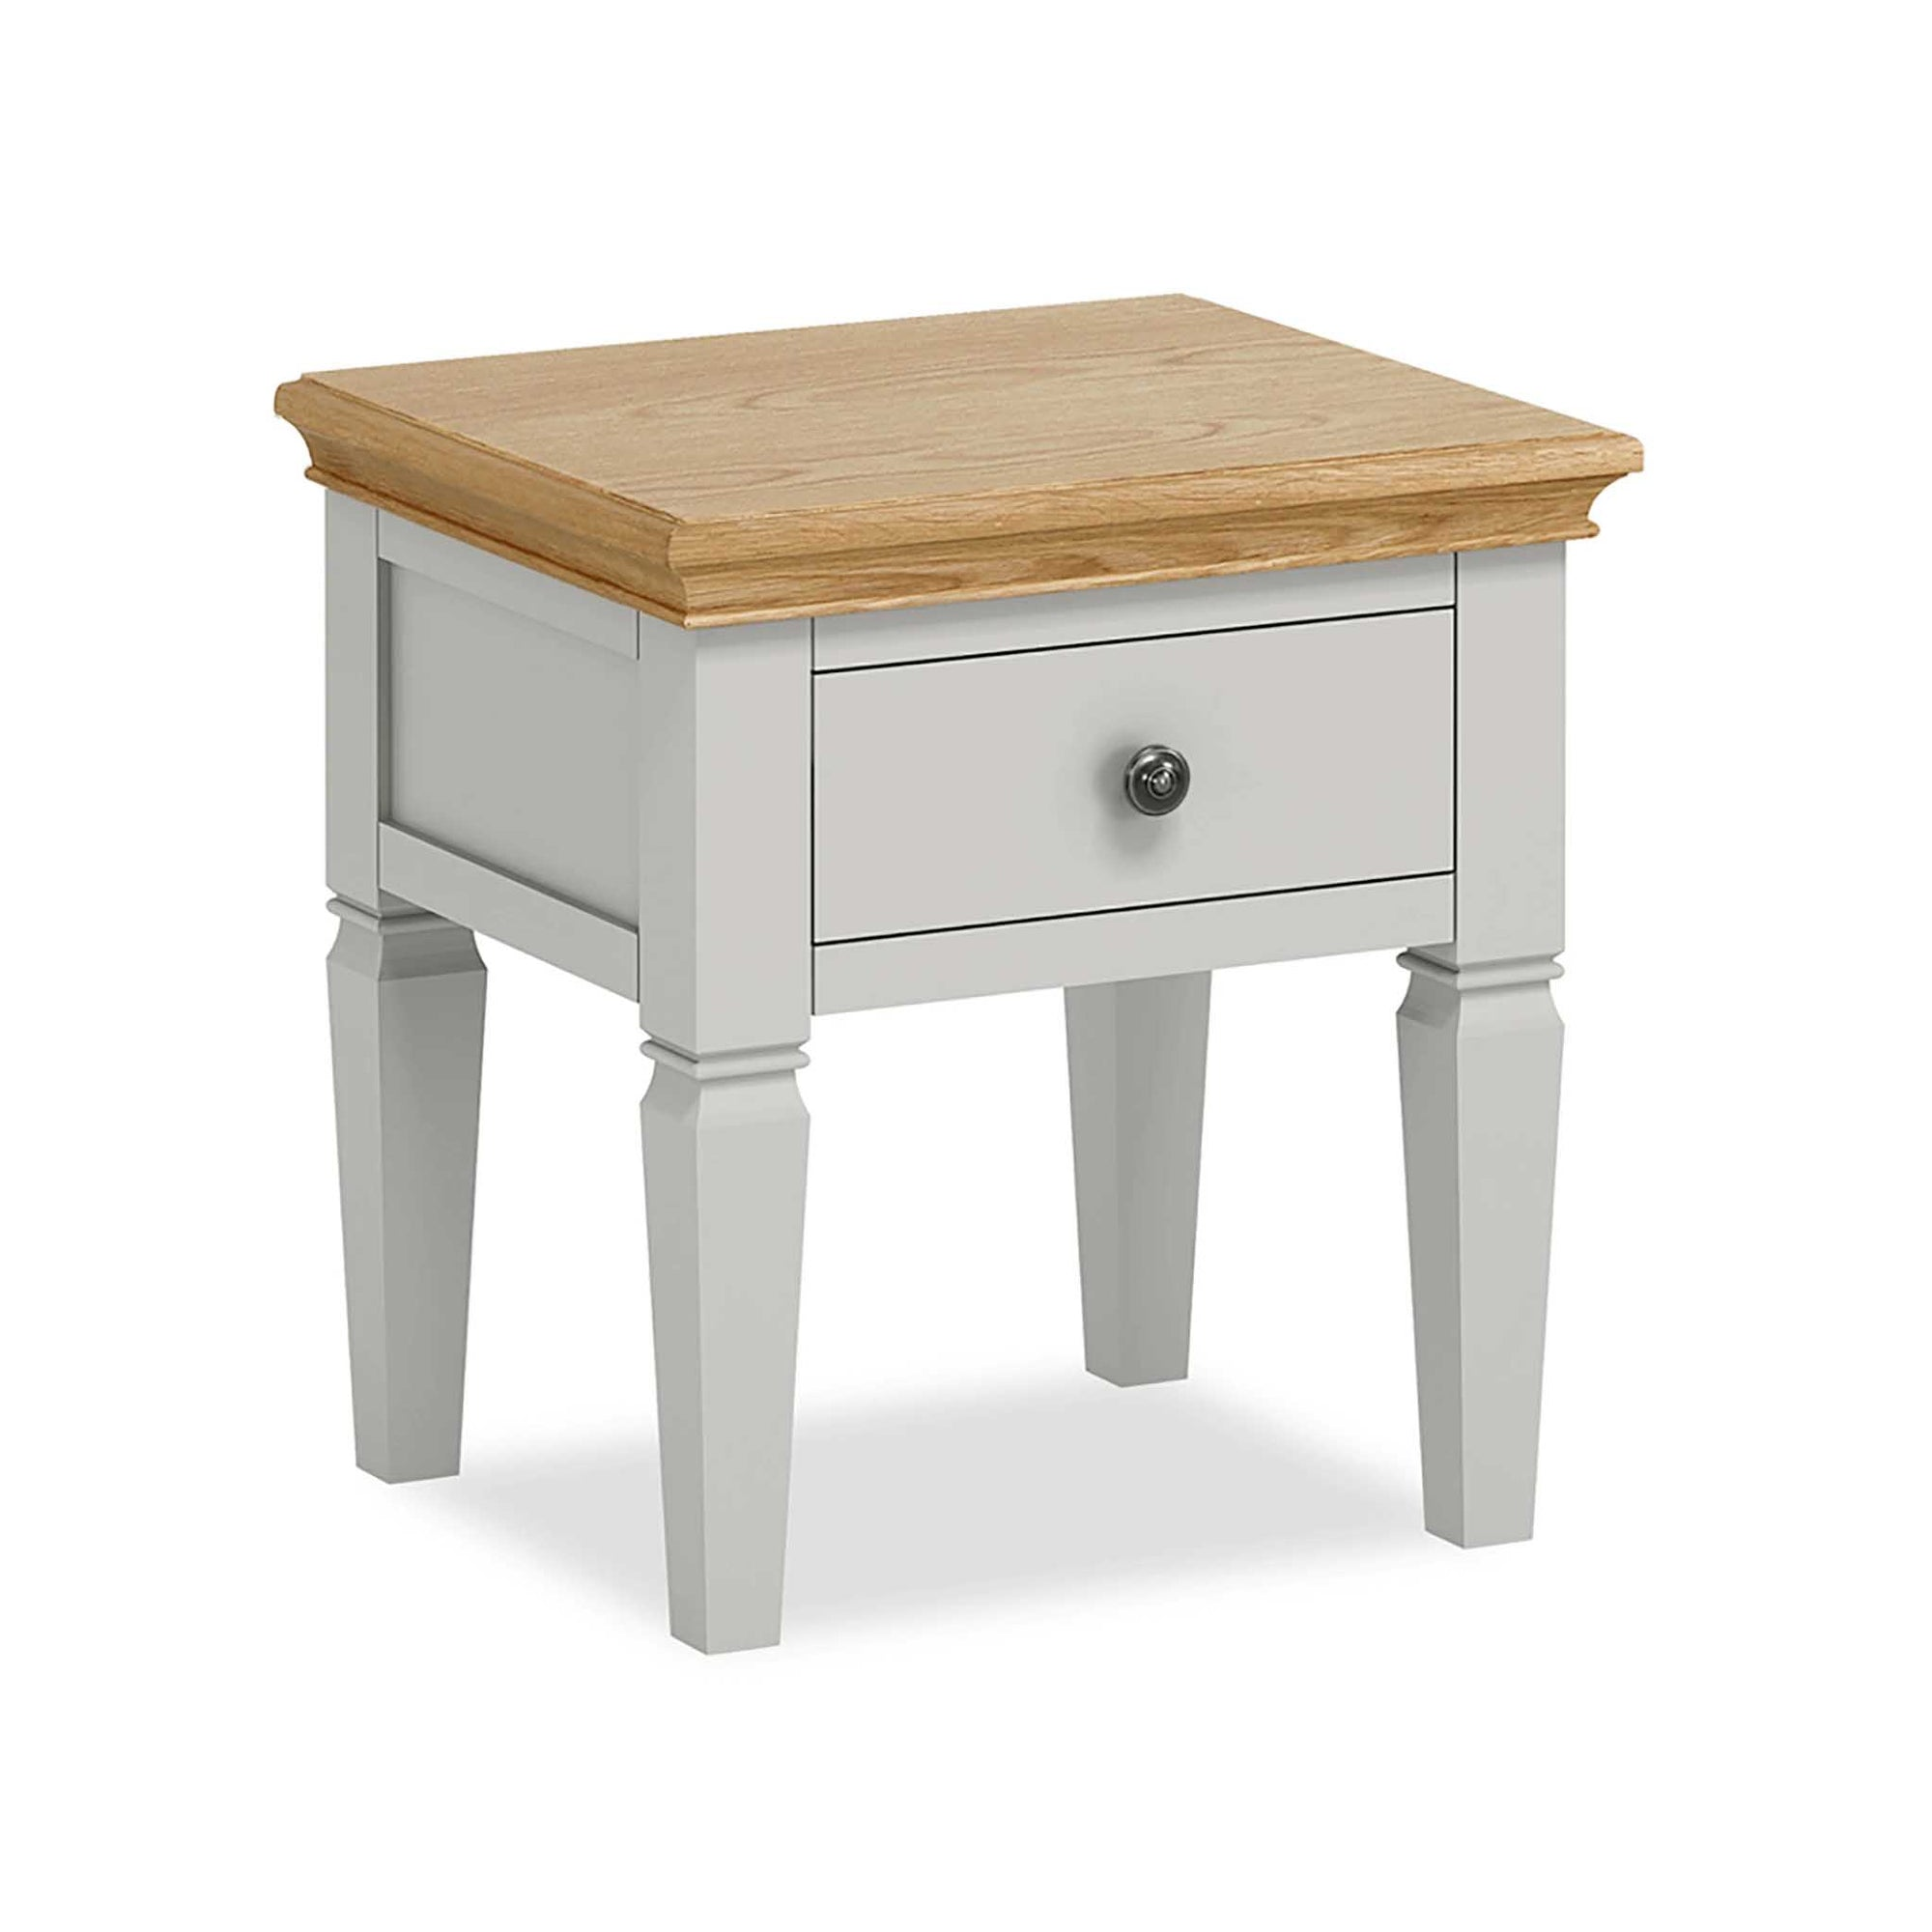 Normandy Grey Lamp Side Table by Roseland Furniture